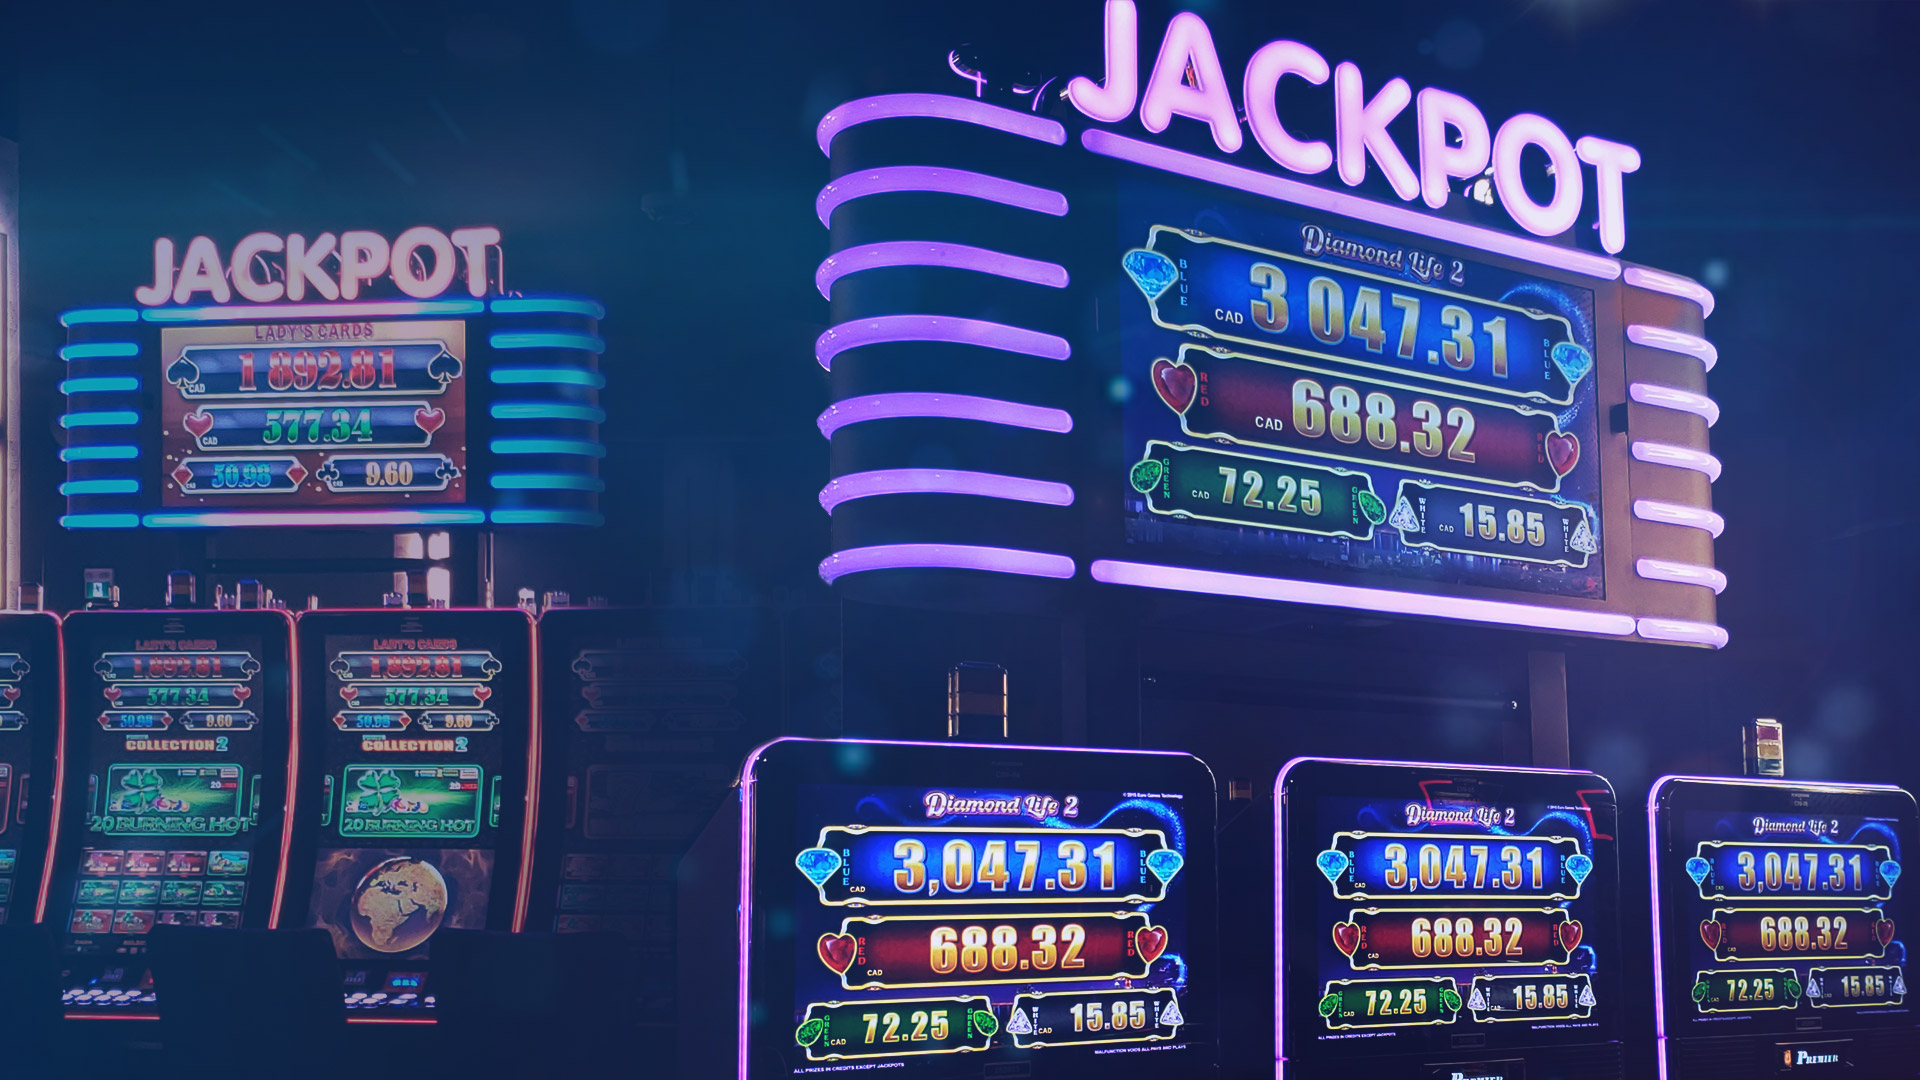 50 jackpots in 2 weeks!